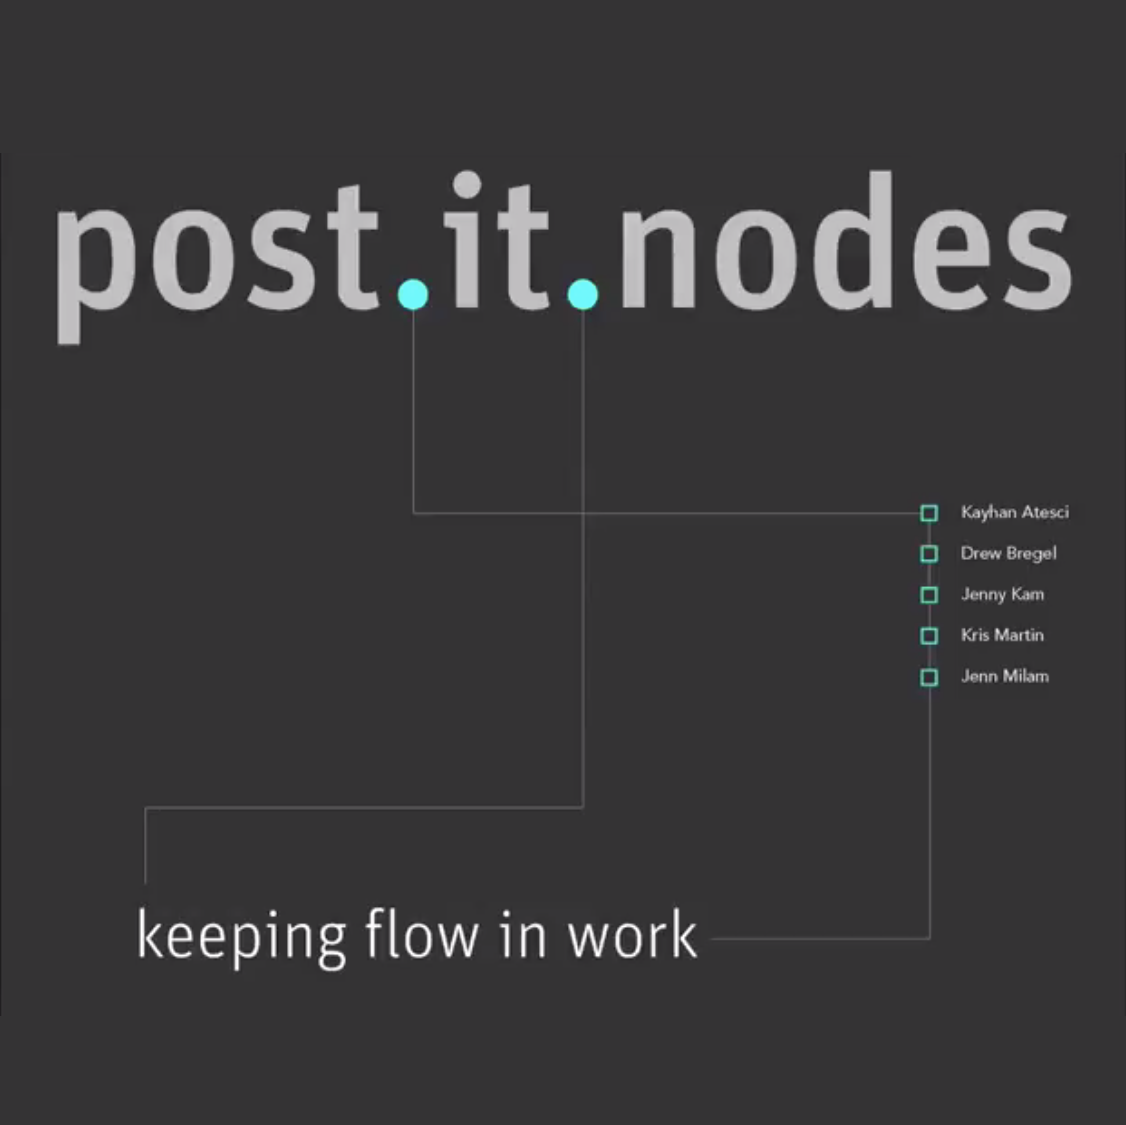 Post.it.nodes